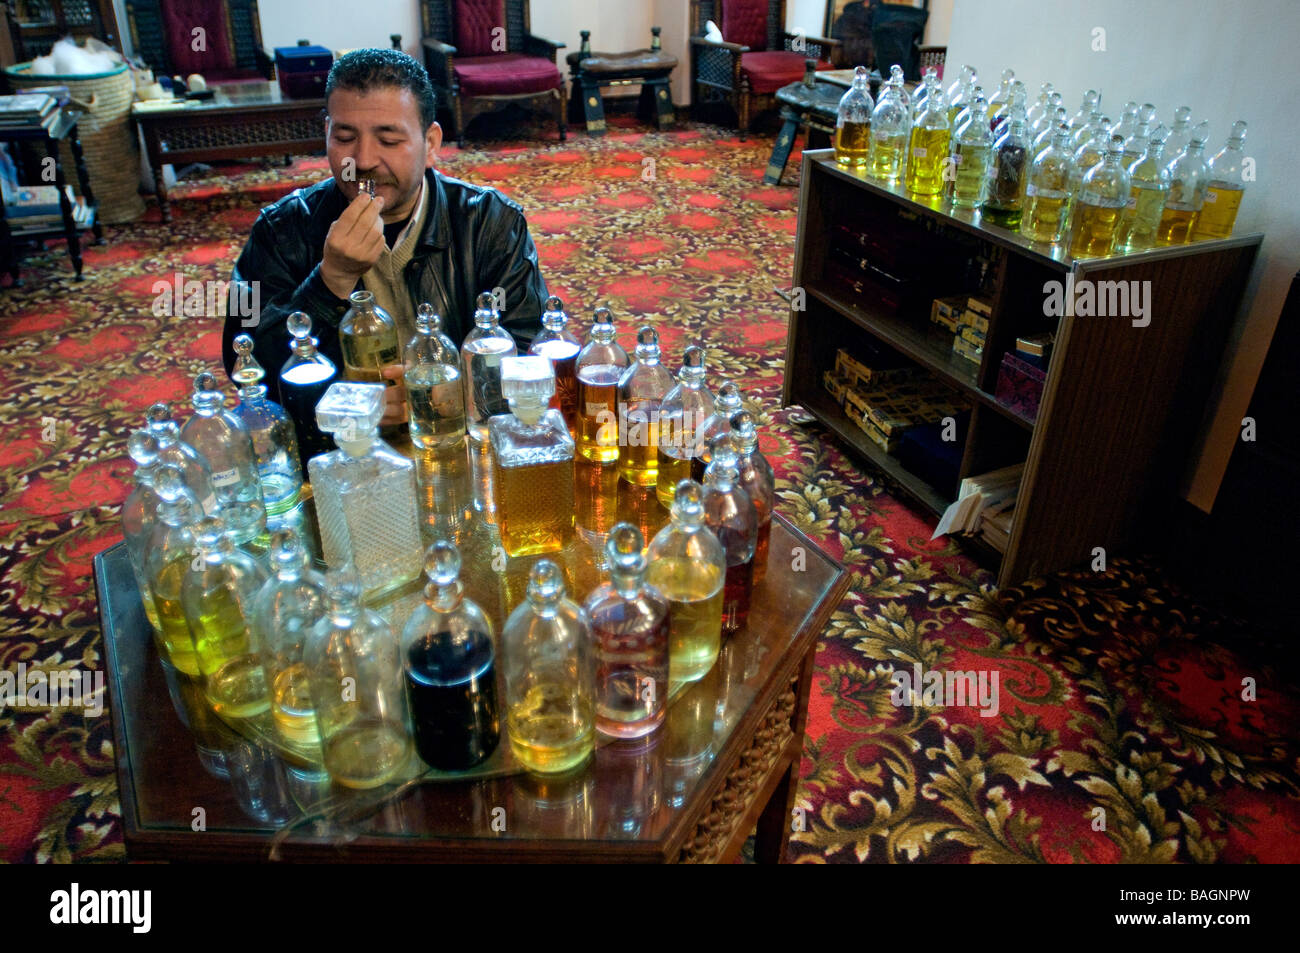 Egypte, Le Caire, perfumer - Stock Image